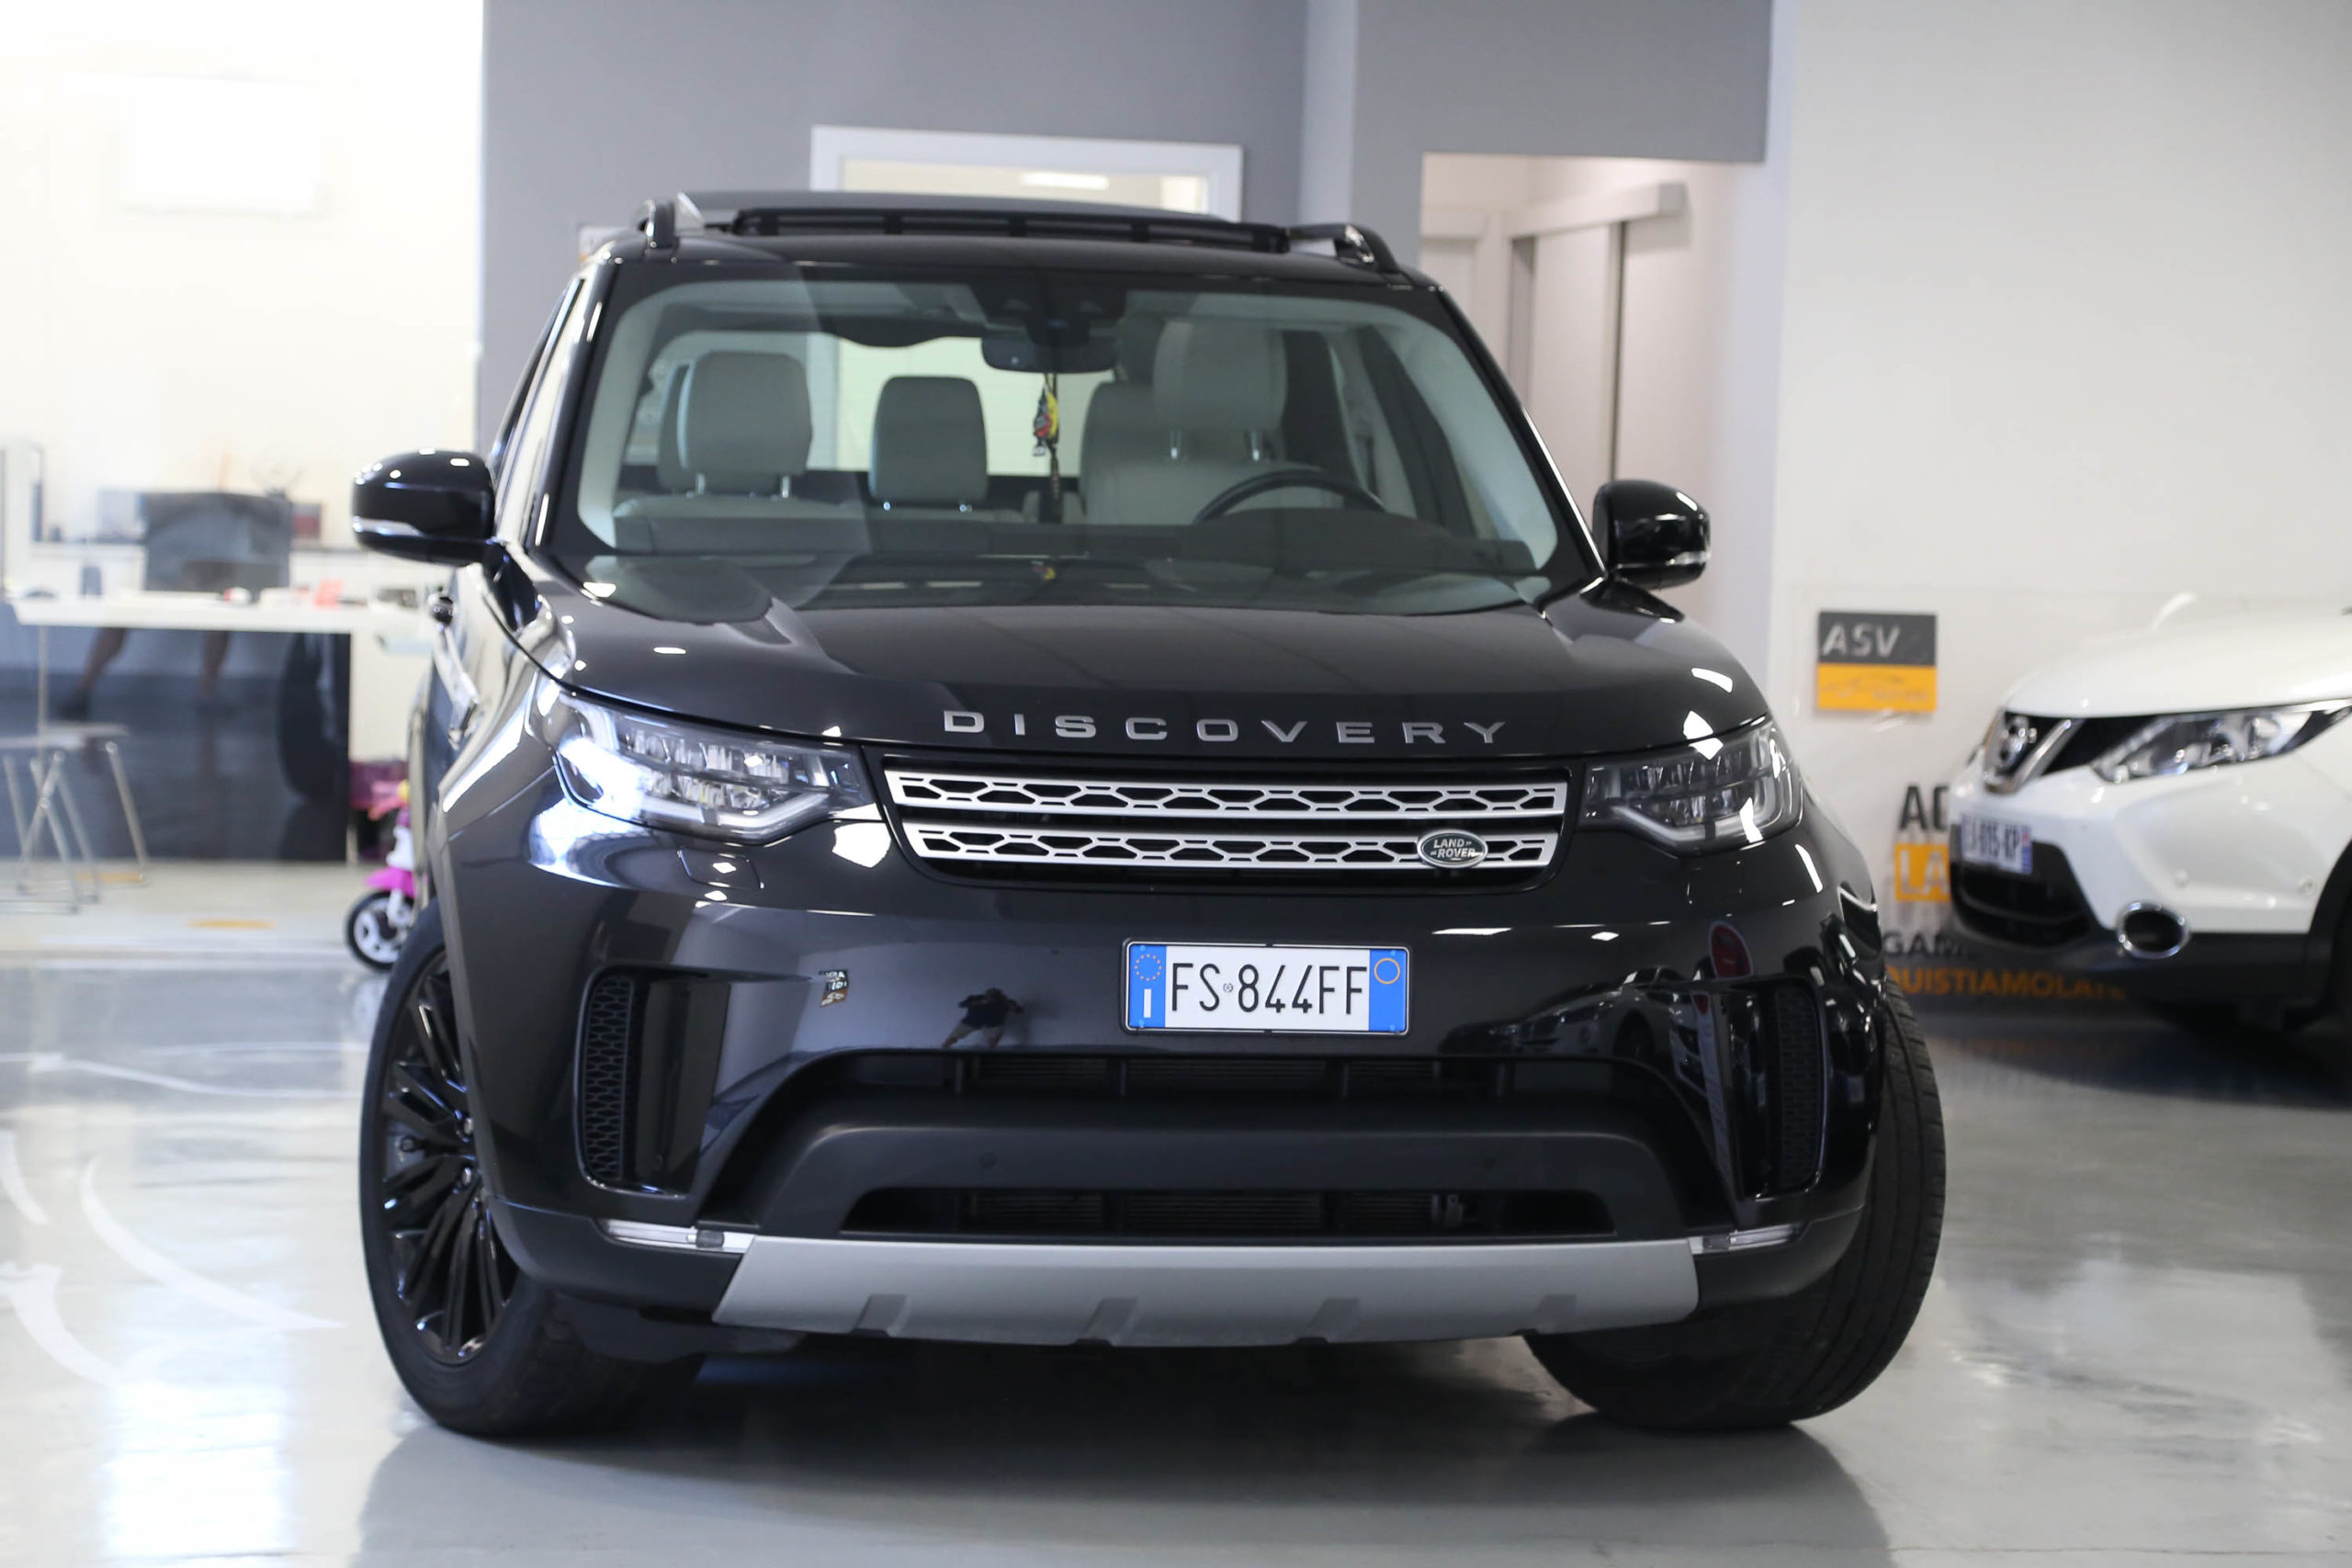 Land Rover Discovery 3.0 TD6 249 CV HSE 7 Posti